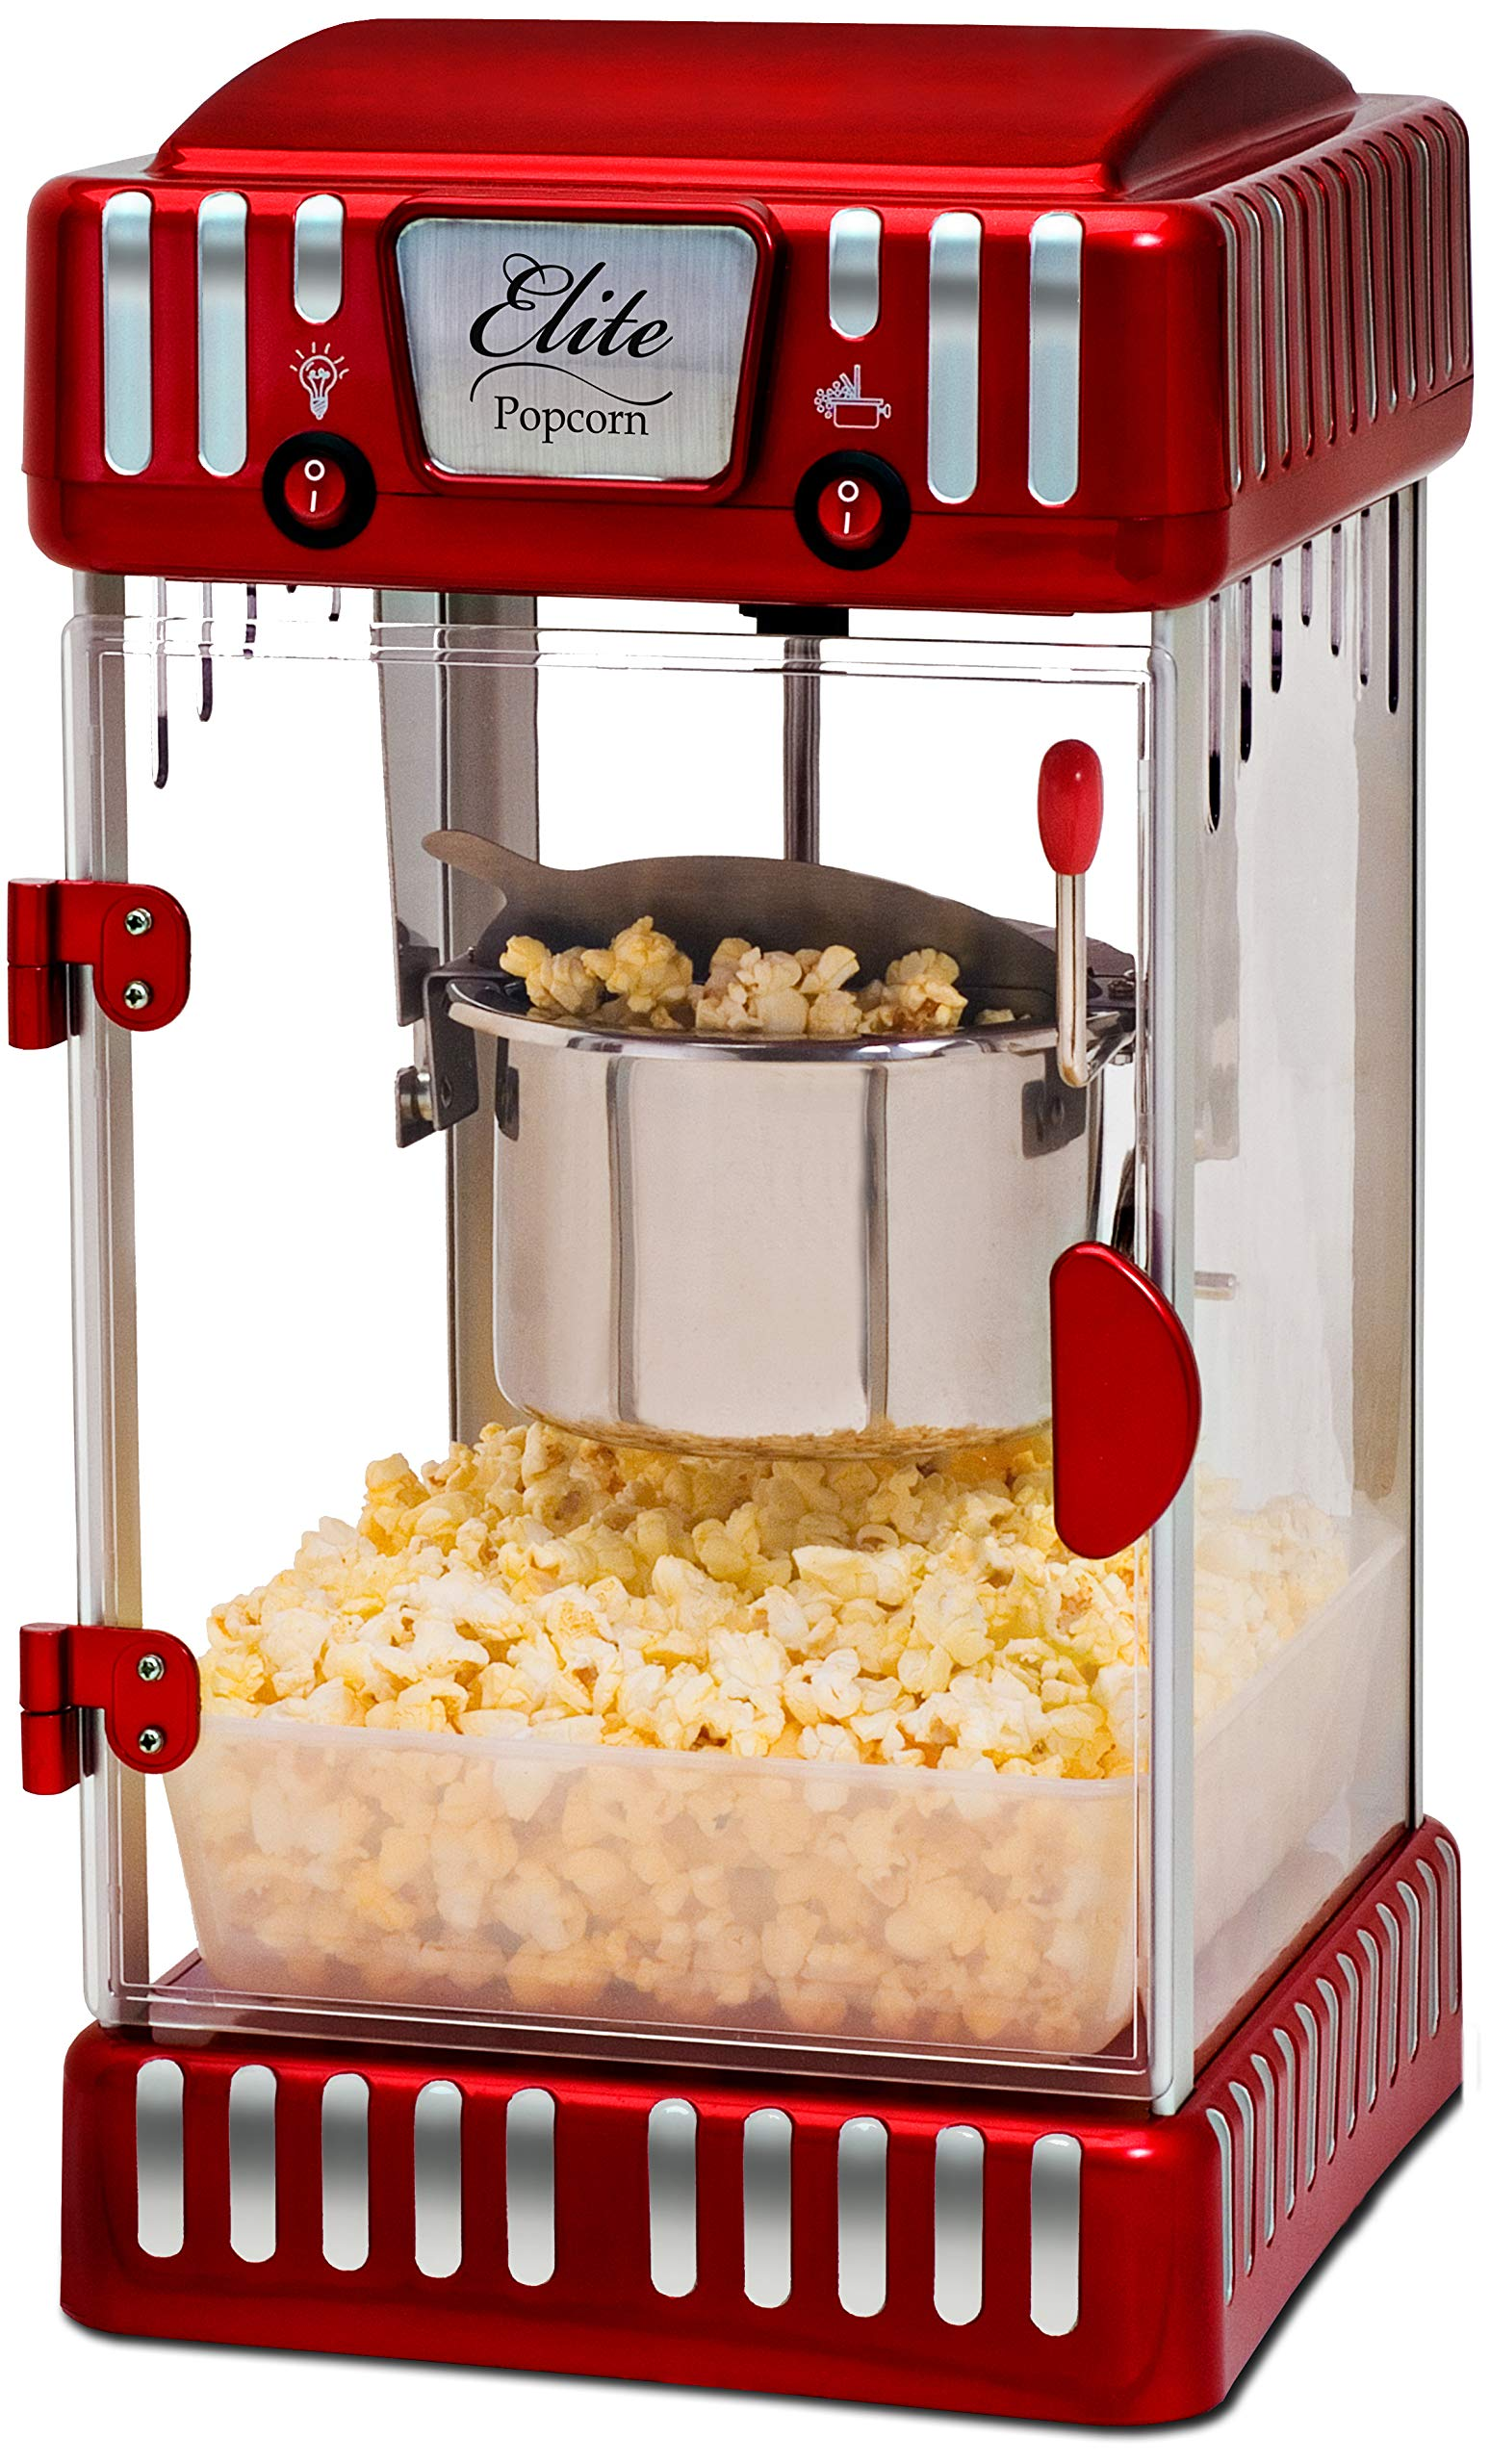 Elite Deluxe EPM-250 2.5 Ounce Classic Tabletop Kettle Popcorn Popper Machine, Retro-Style, Red by Maxi-Matic